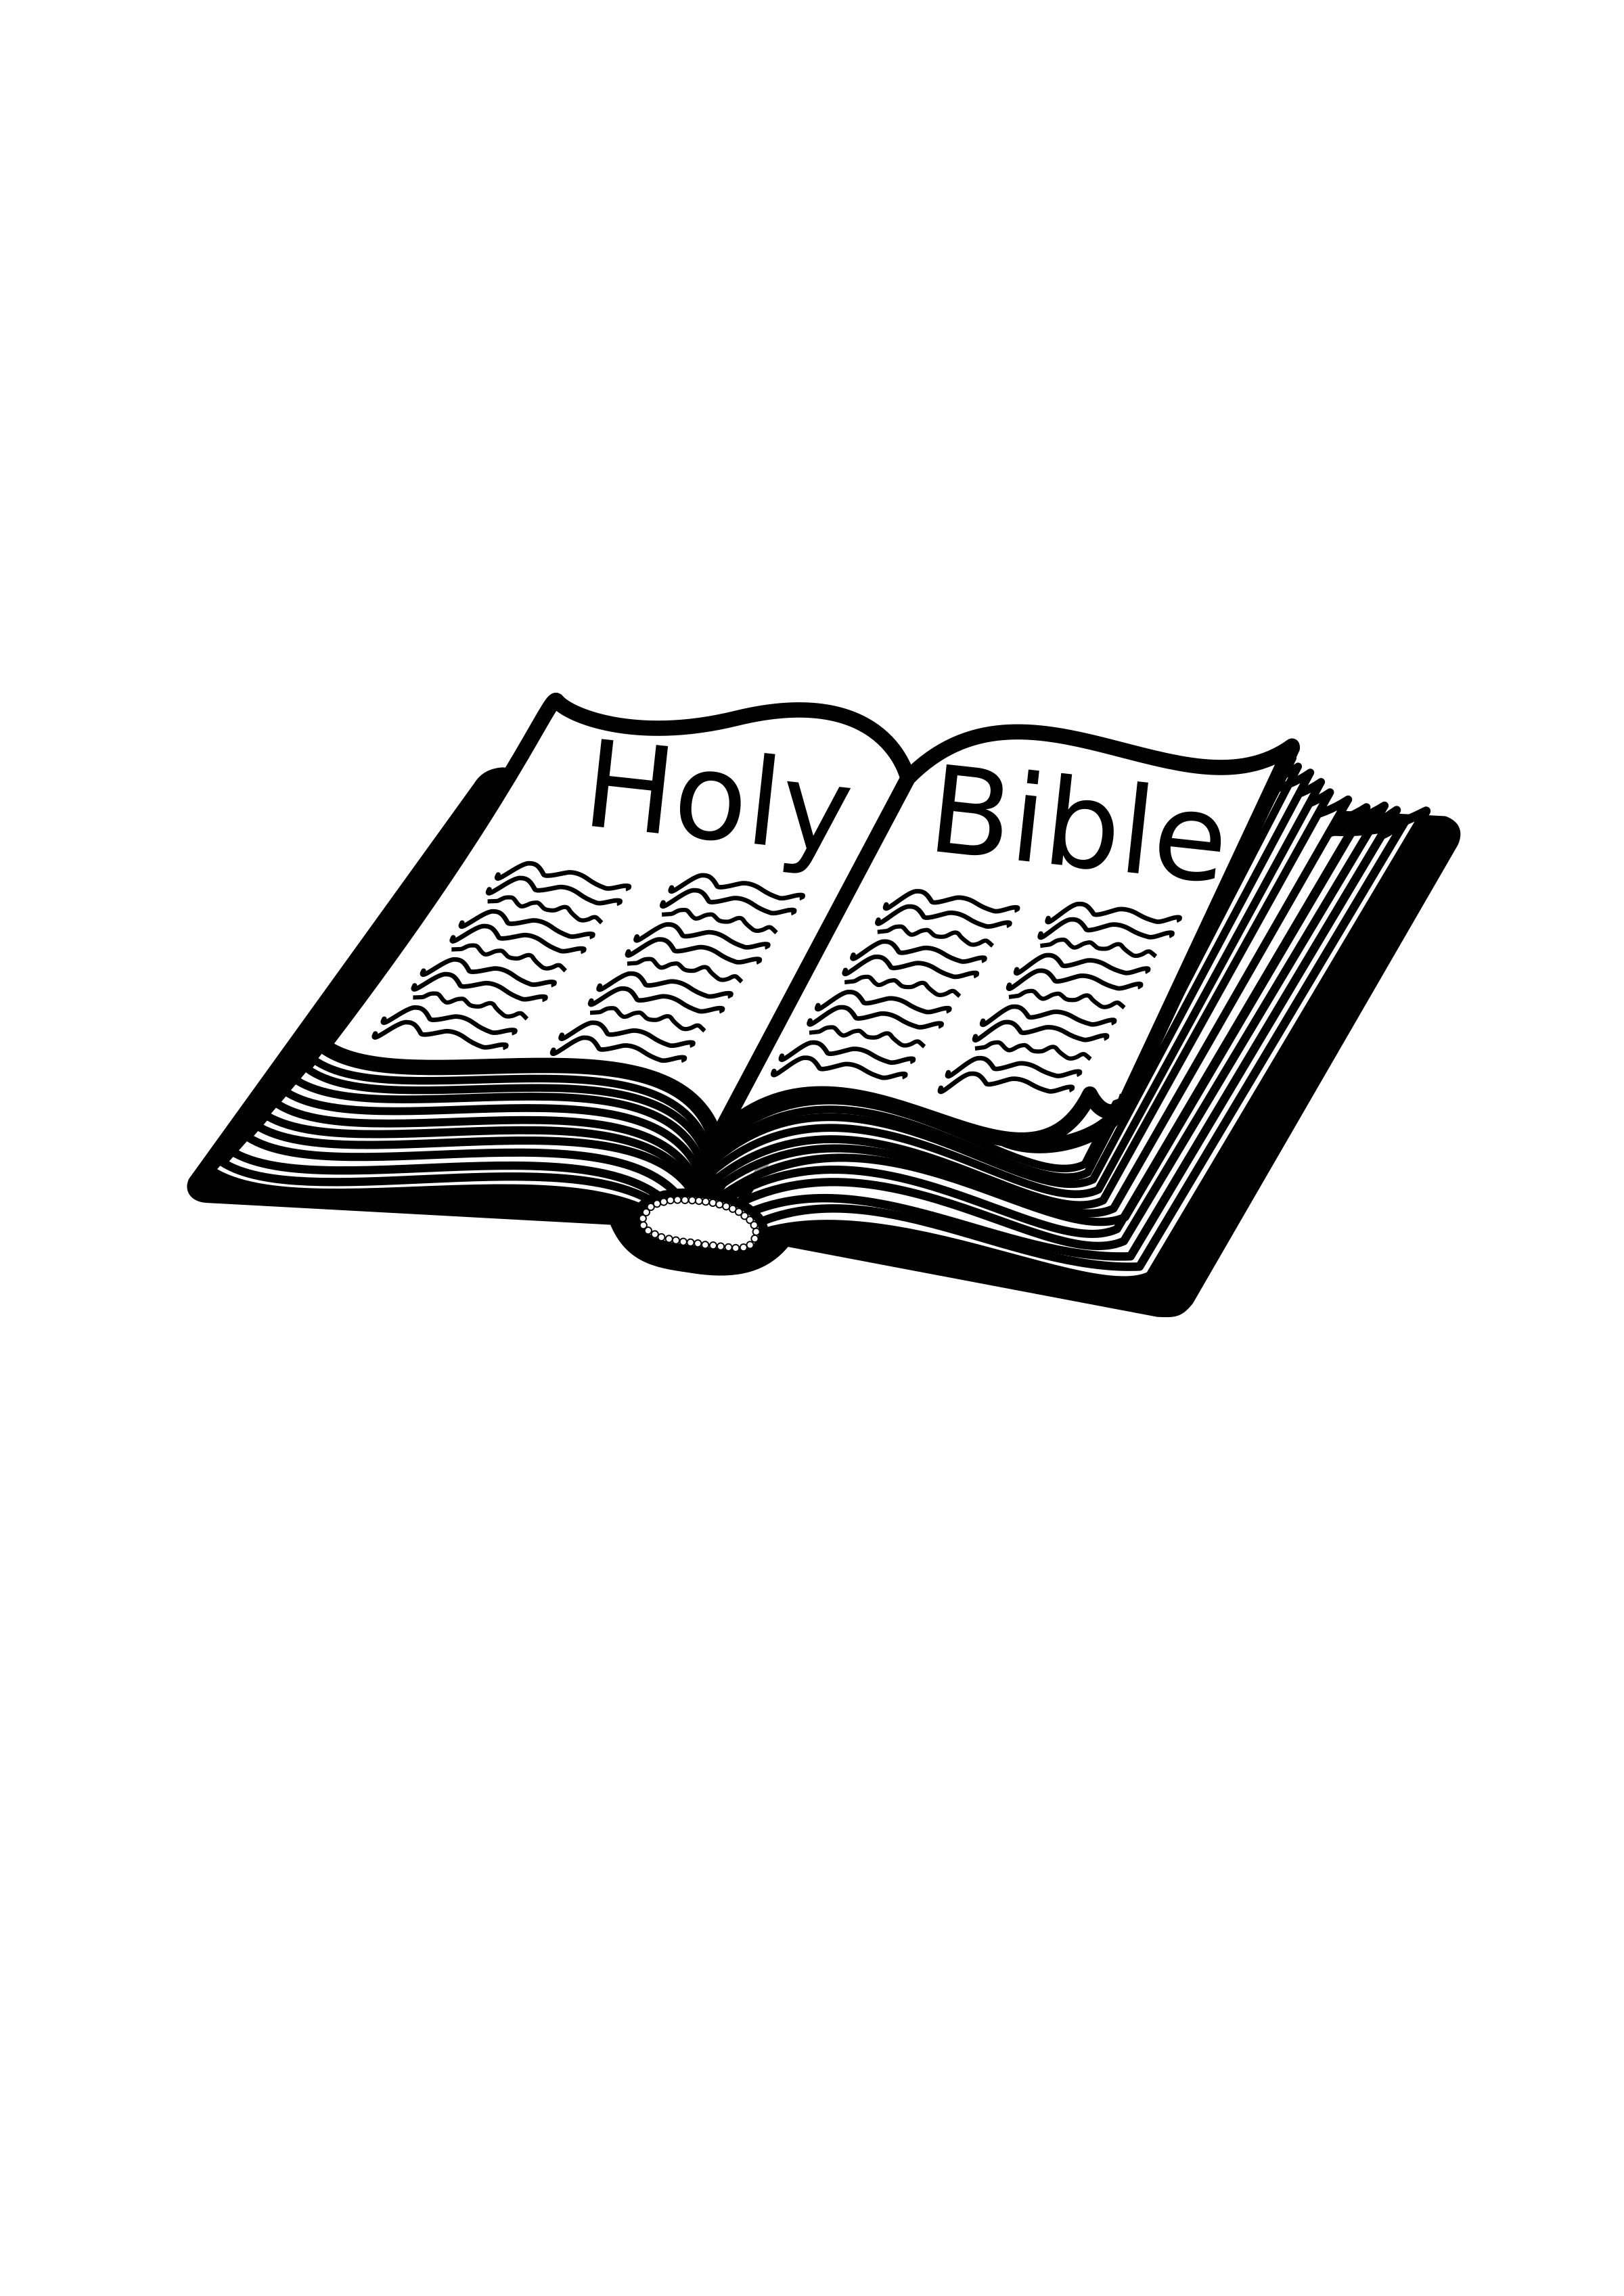 Bible svg holy. Clipart big image png